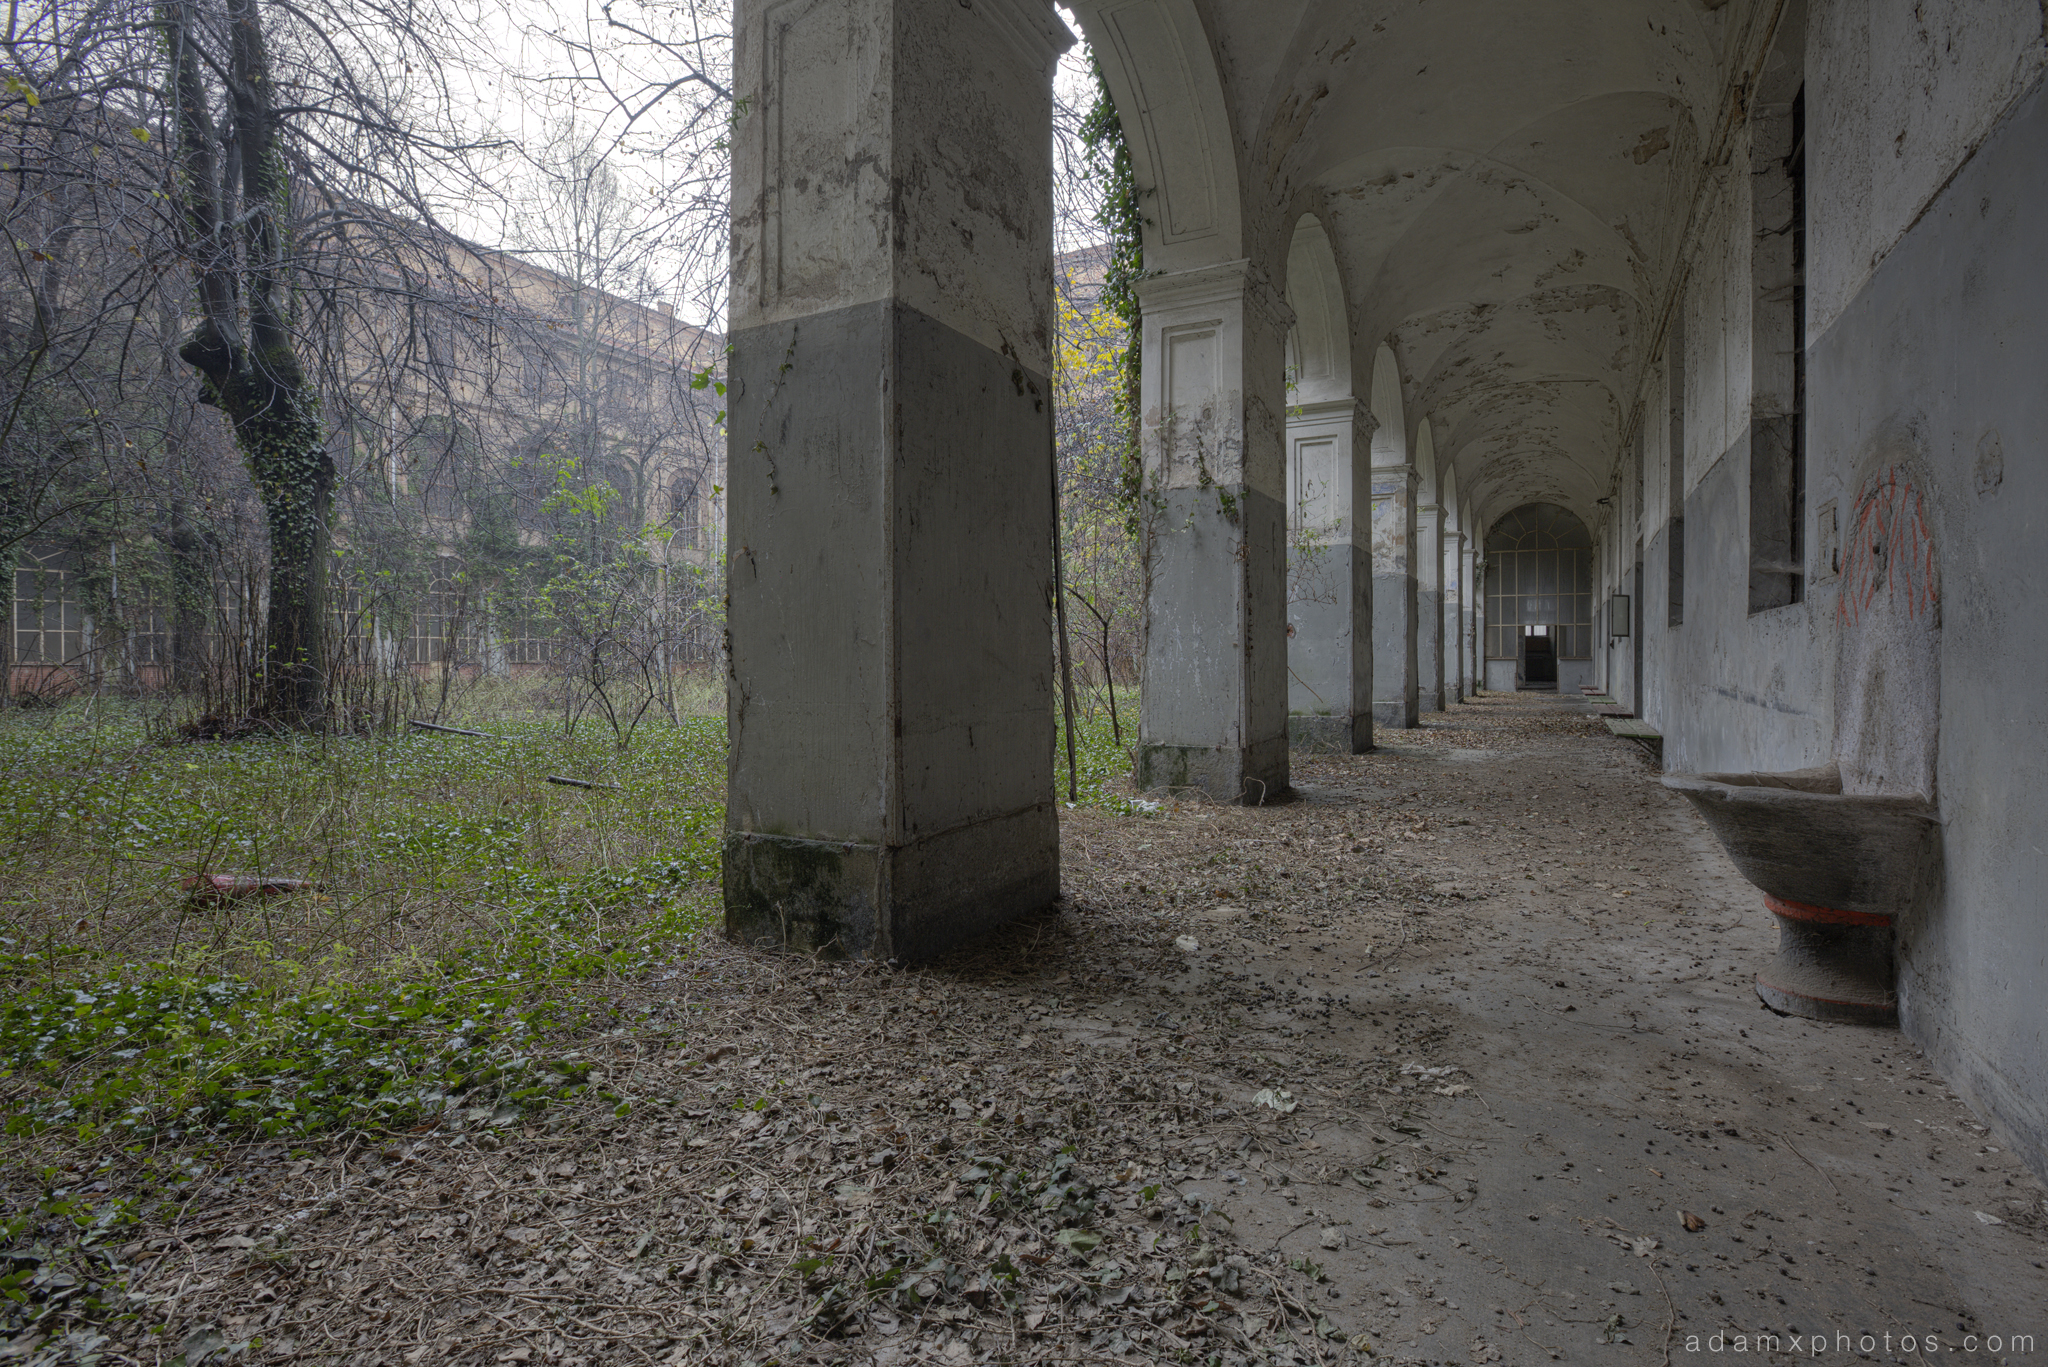 Manicomio di R Dr Rossetti Rosetti doctor Urbex Adam X Urban Exploration courtyard quad outside columns cloister cloisters overgrown trees overgrown overgrowth photo photos report decay detail UE abandoned derelict unused empty disused decay decayed decaying grimy grime